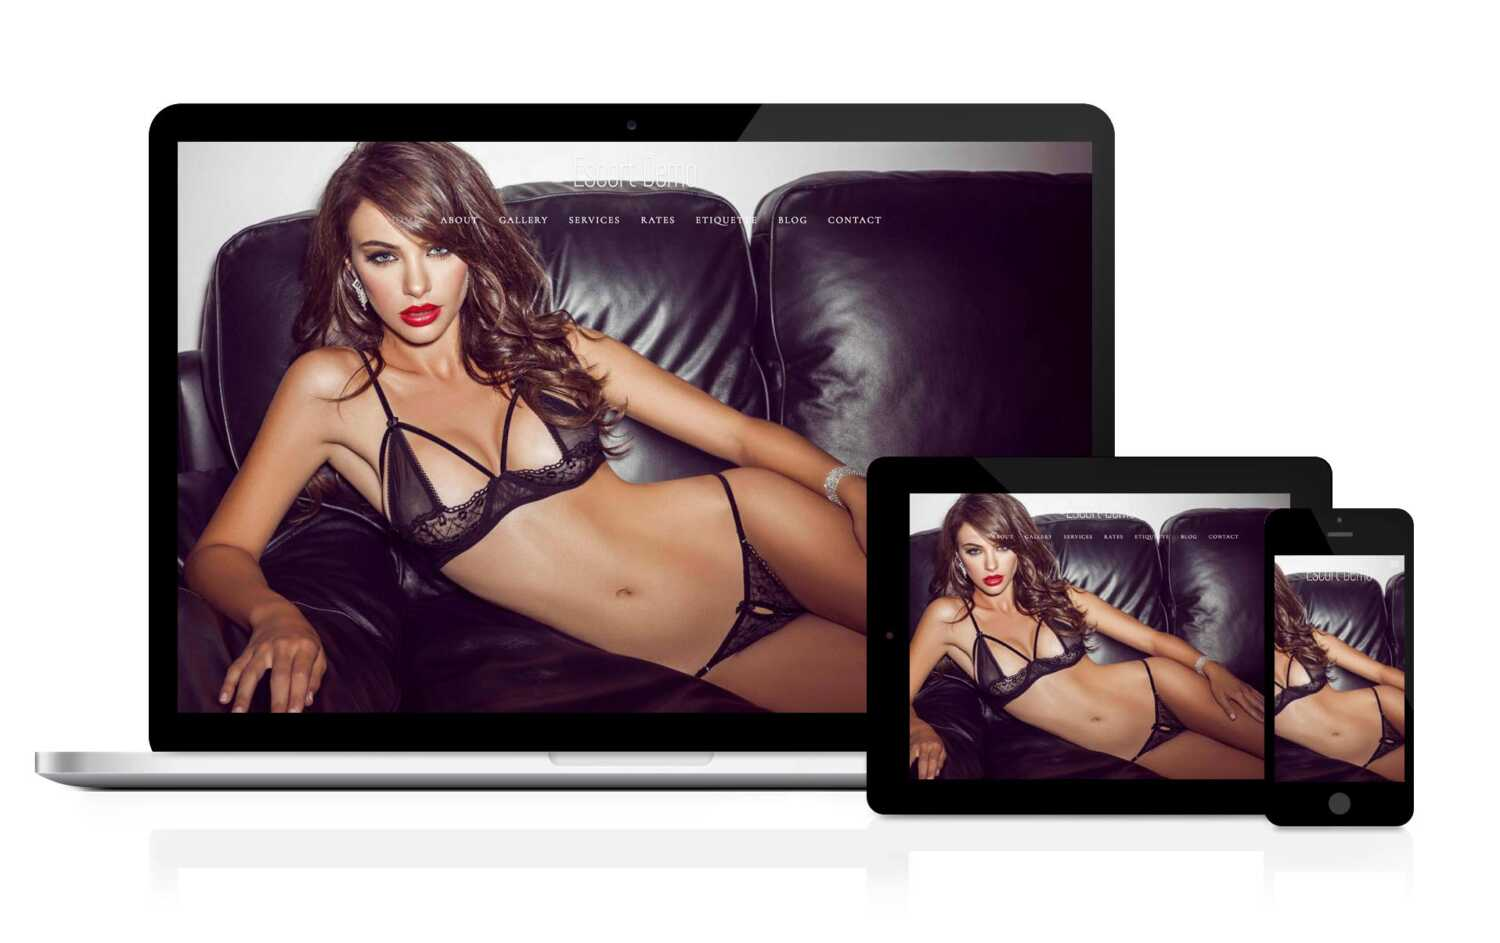 Escort website design